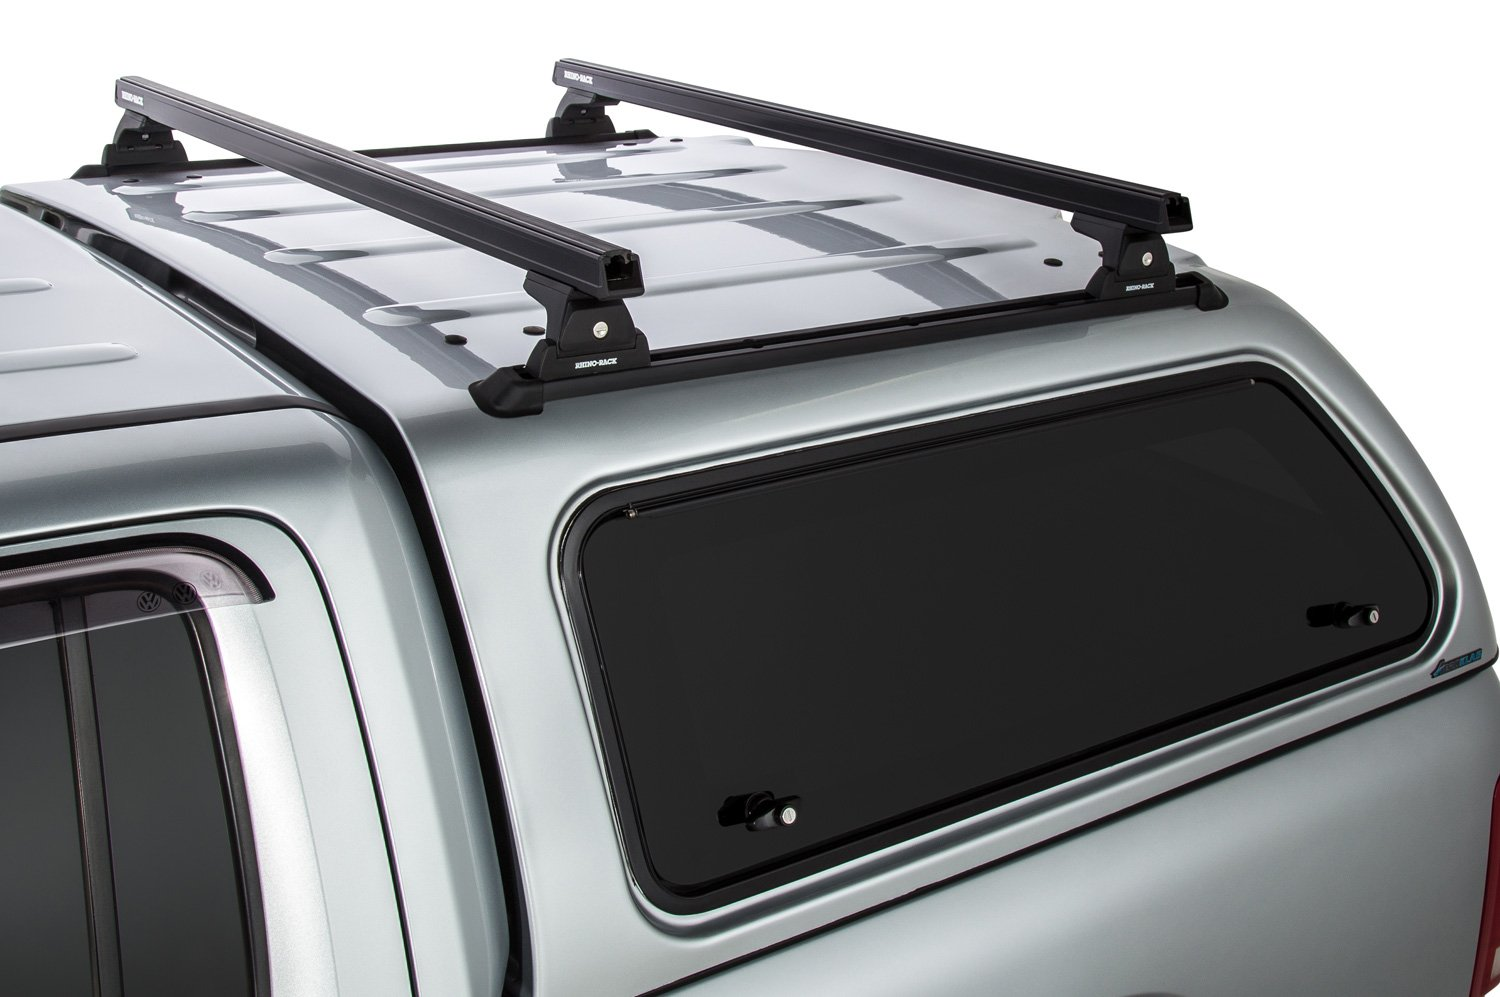 Rhino Rack Truck Cap Racks Rhino Rack Truck Topper Roof Rack